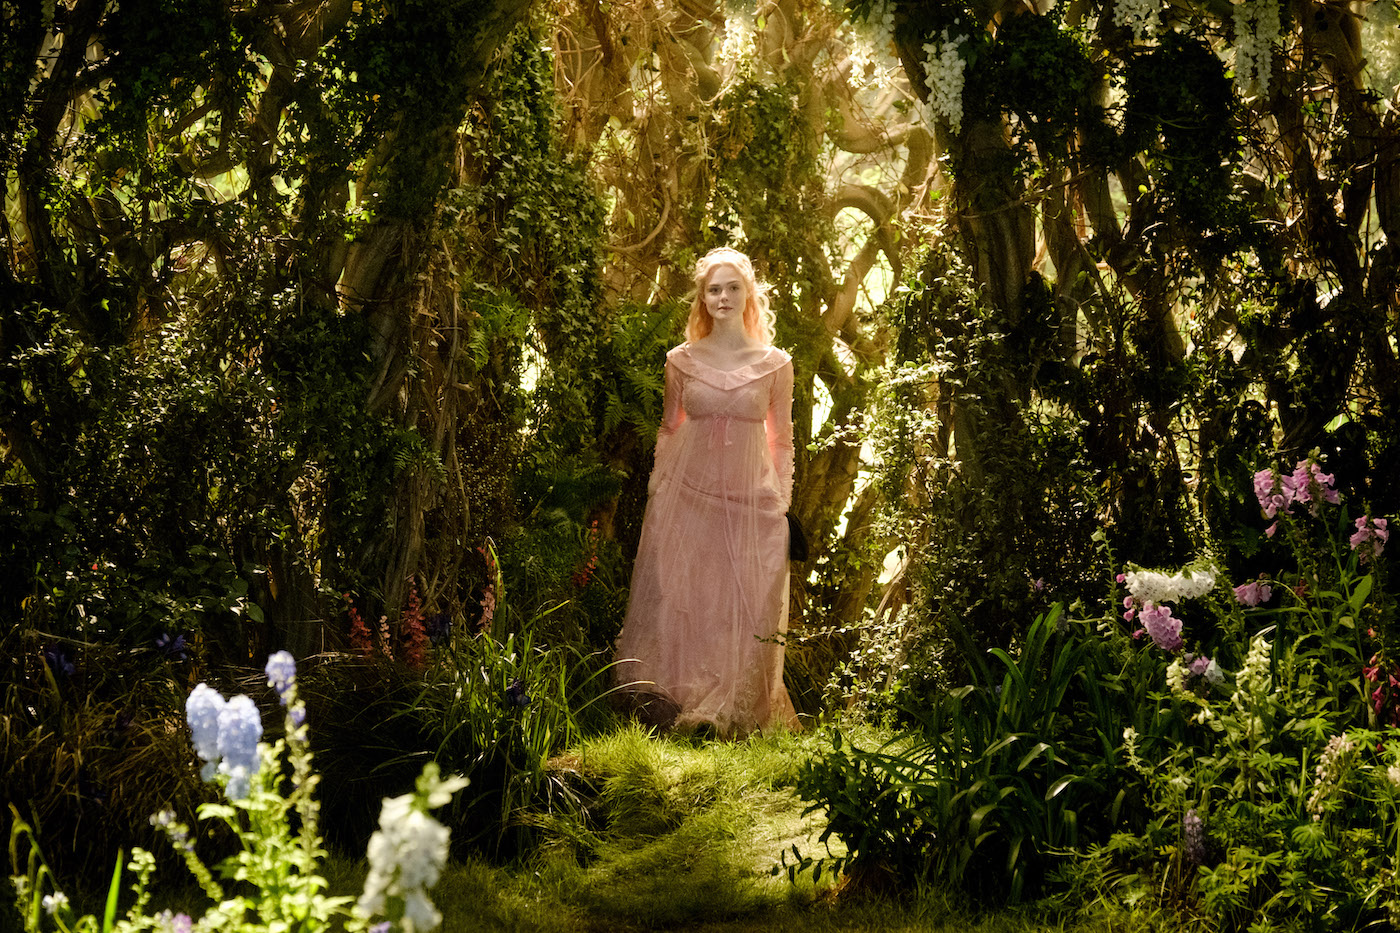 Elle Fanning is Aurora in Disney's live-action MALEFICENT:  MISTRESS OF EVIL